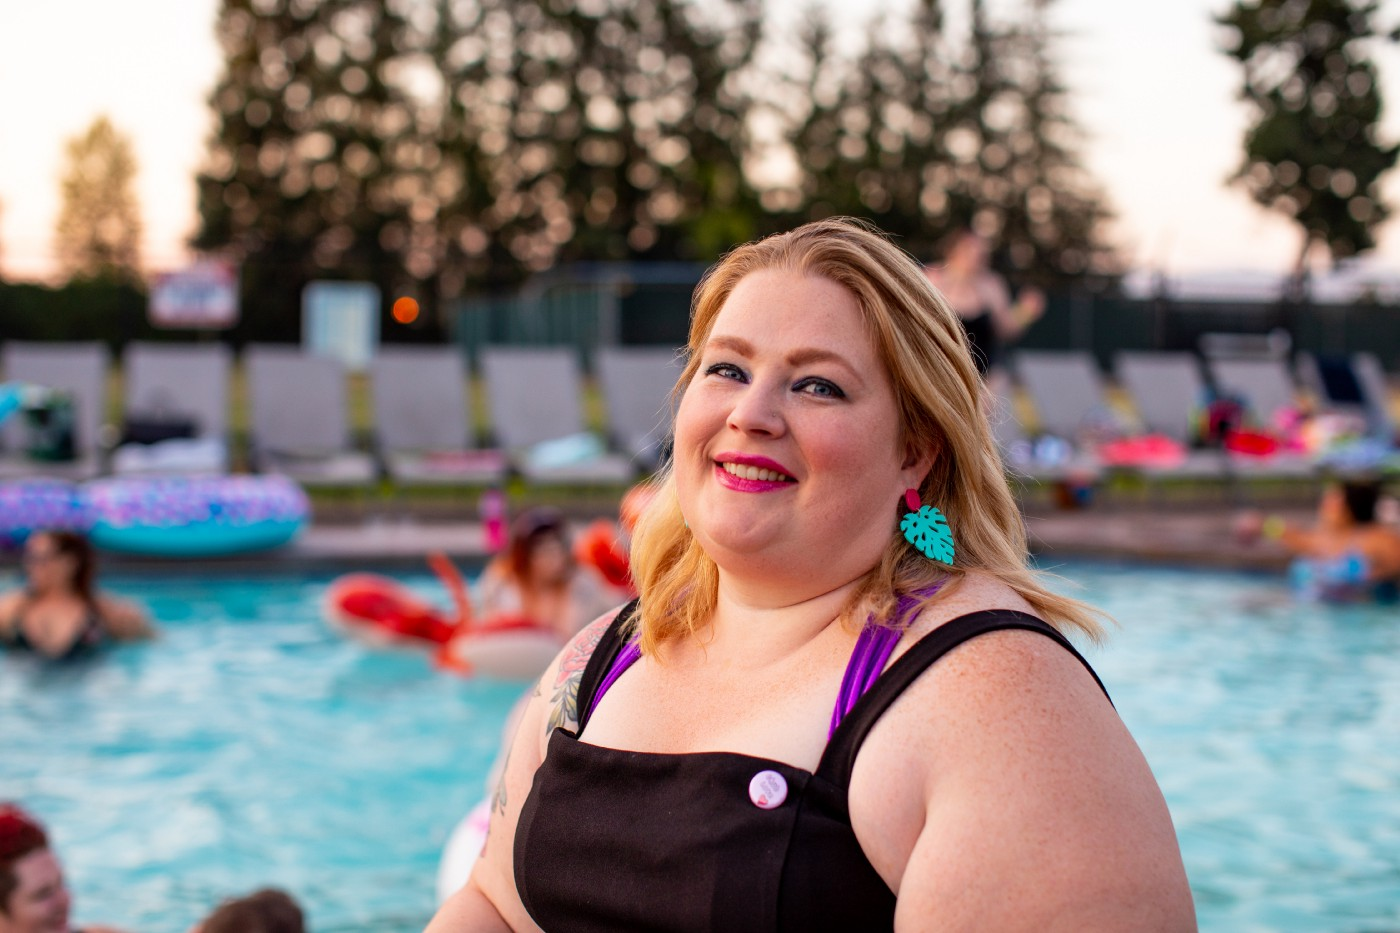 In the foreground is the top half of a fat woman in her thirties who is standing in front of a large in-ground swimming pool. She is wearing a black retro style swimming costume and dangly, bold, aqua colored earrings. Her head is slightly tilted back and she has a gentle smile. In the background people are swimming and sitting on colorful inflatables. The sun is setting and there is a row of beige pool loungers.